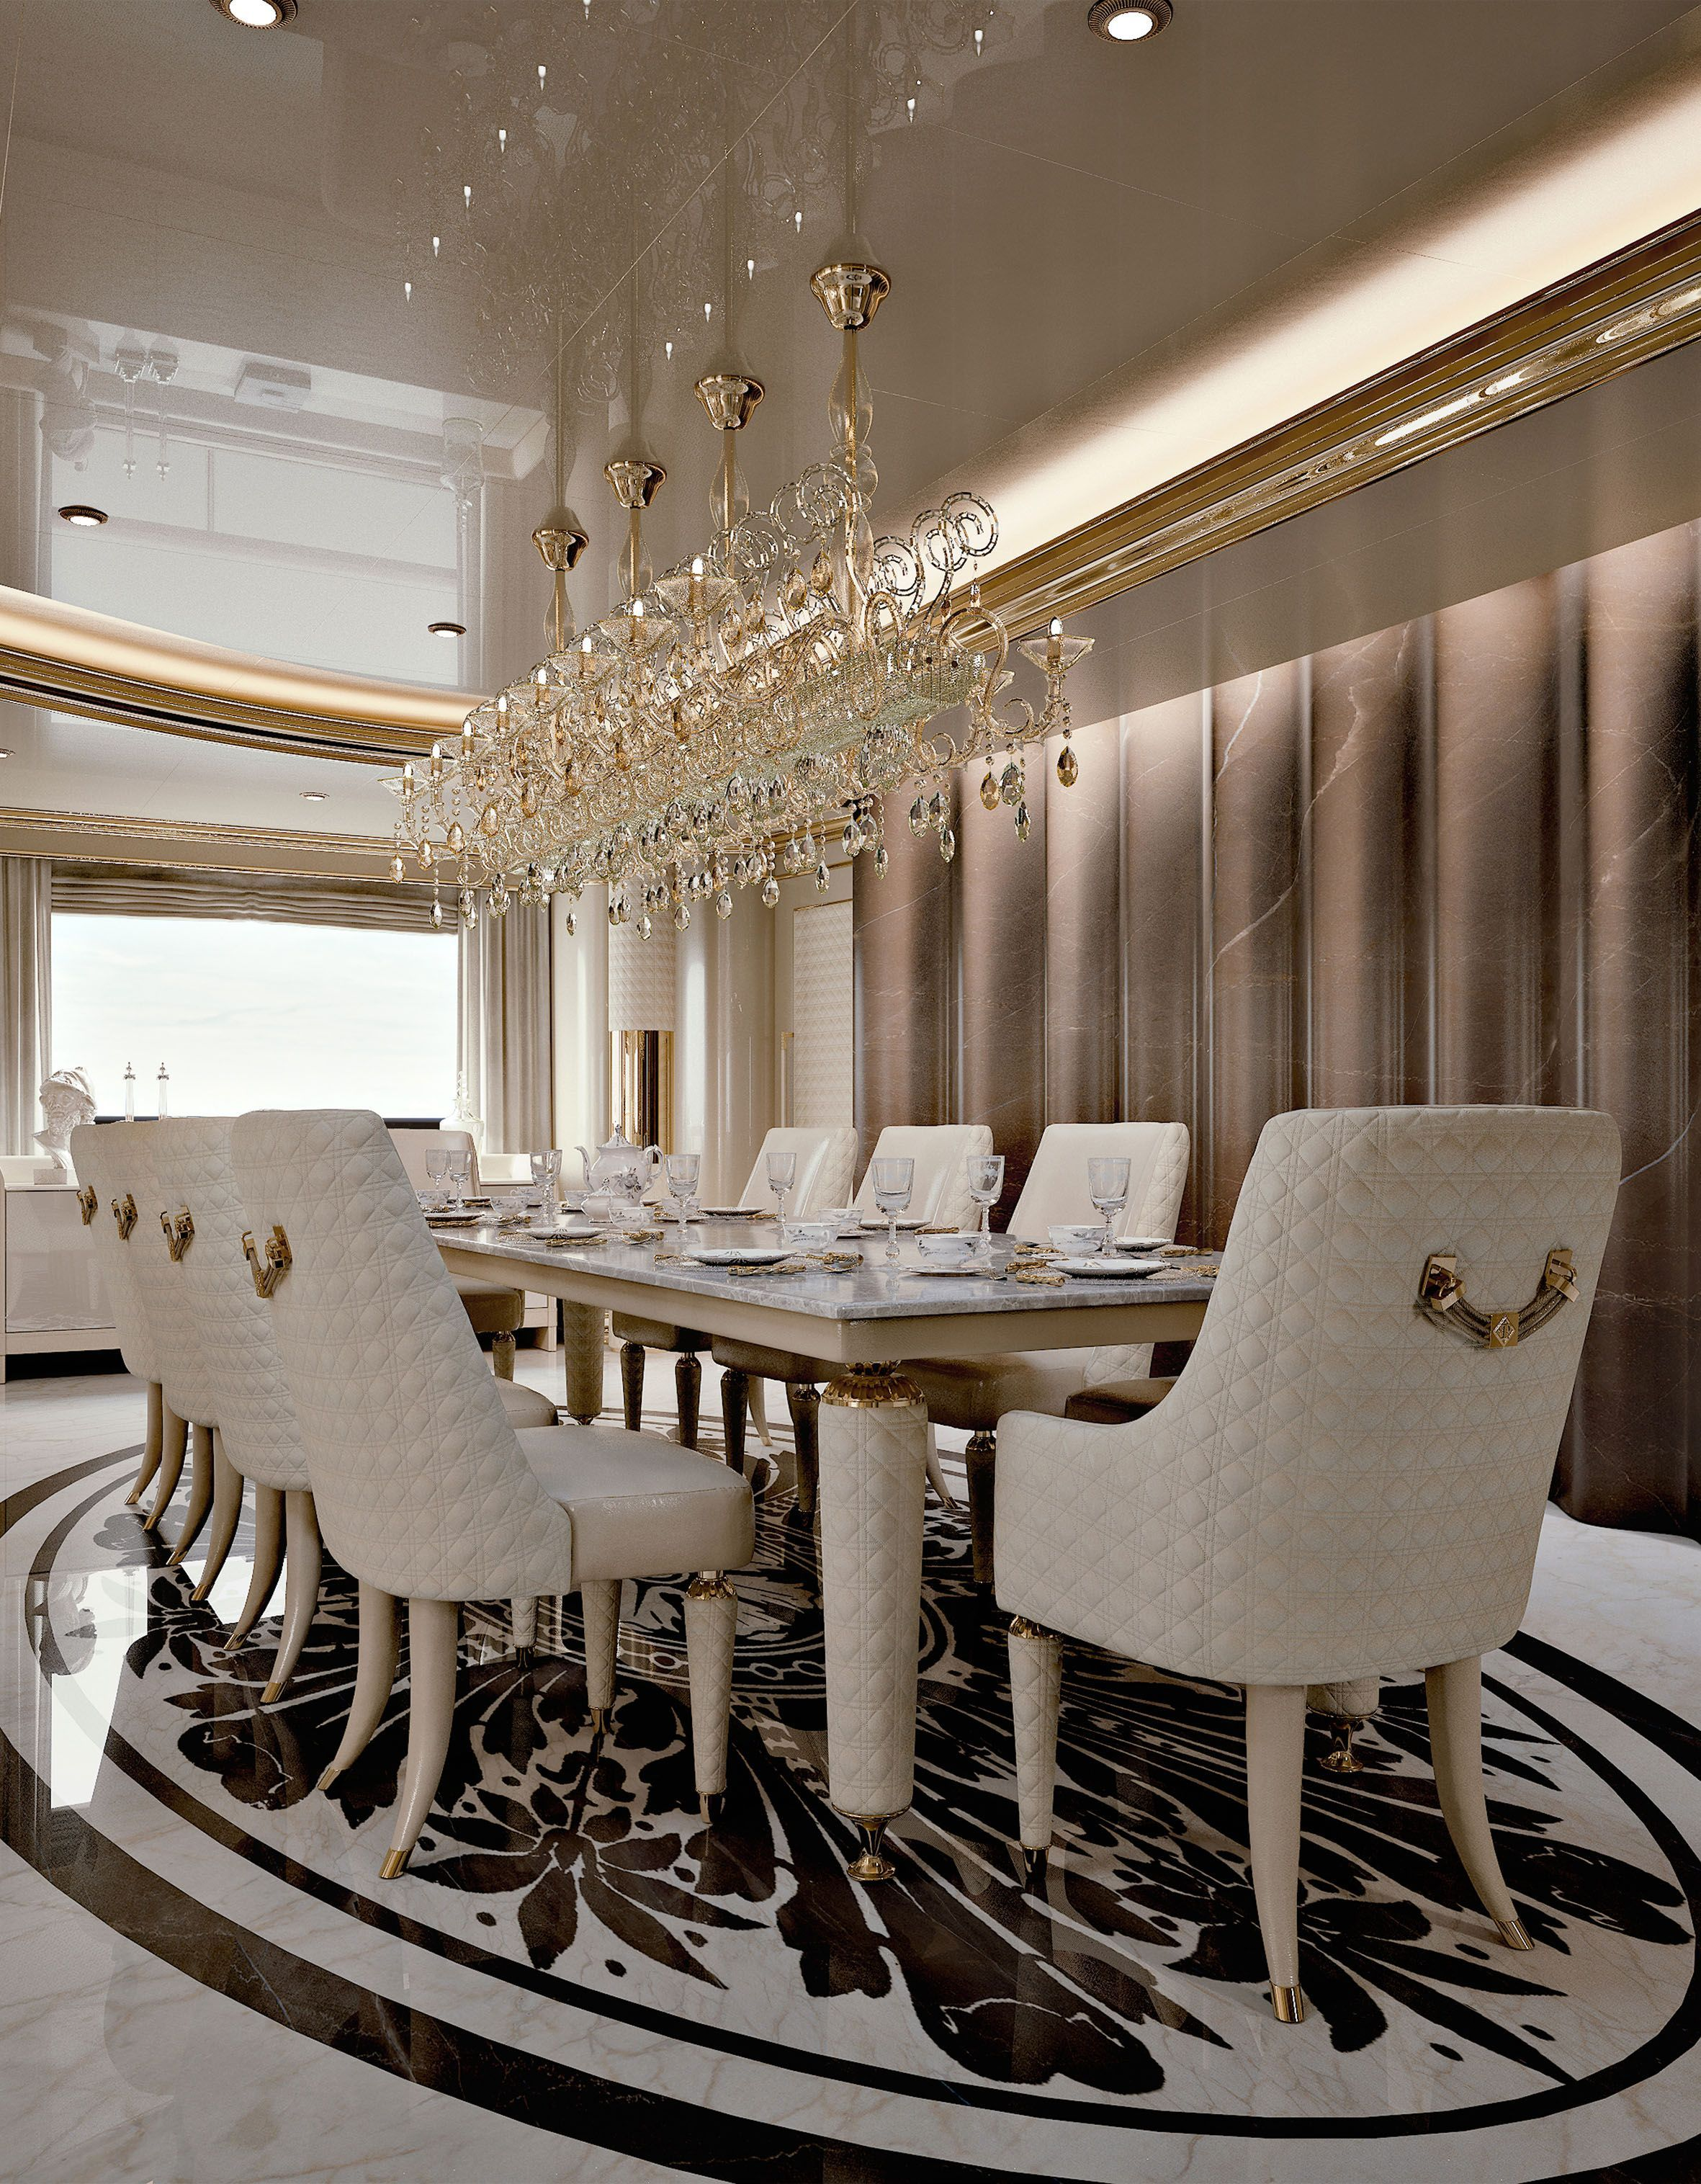 31 Of The Most Brilliant Modern Dining Table Design Ideas ...